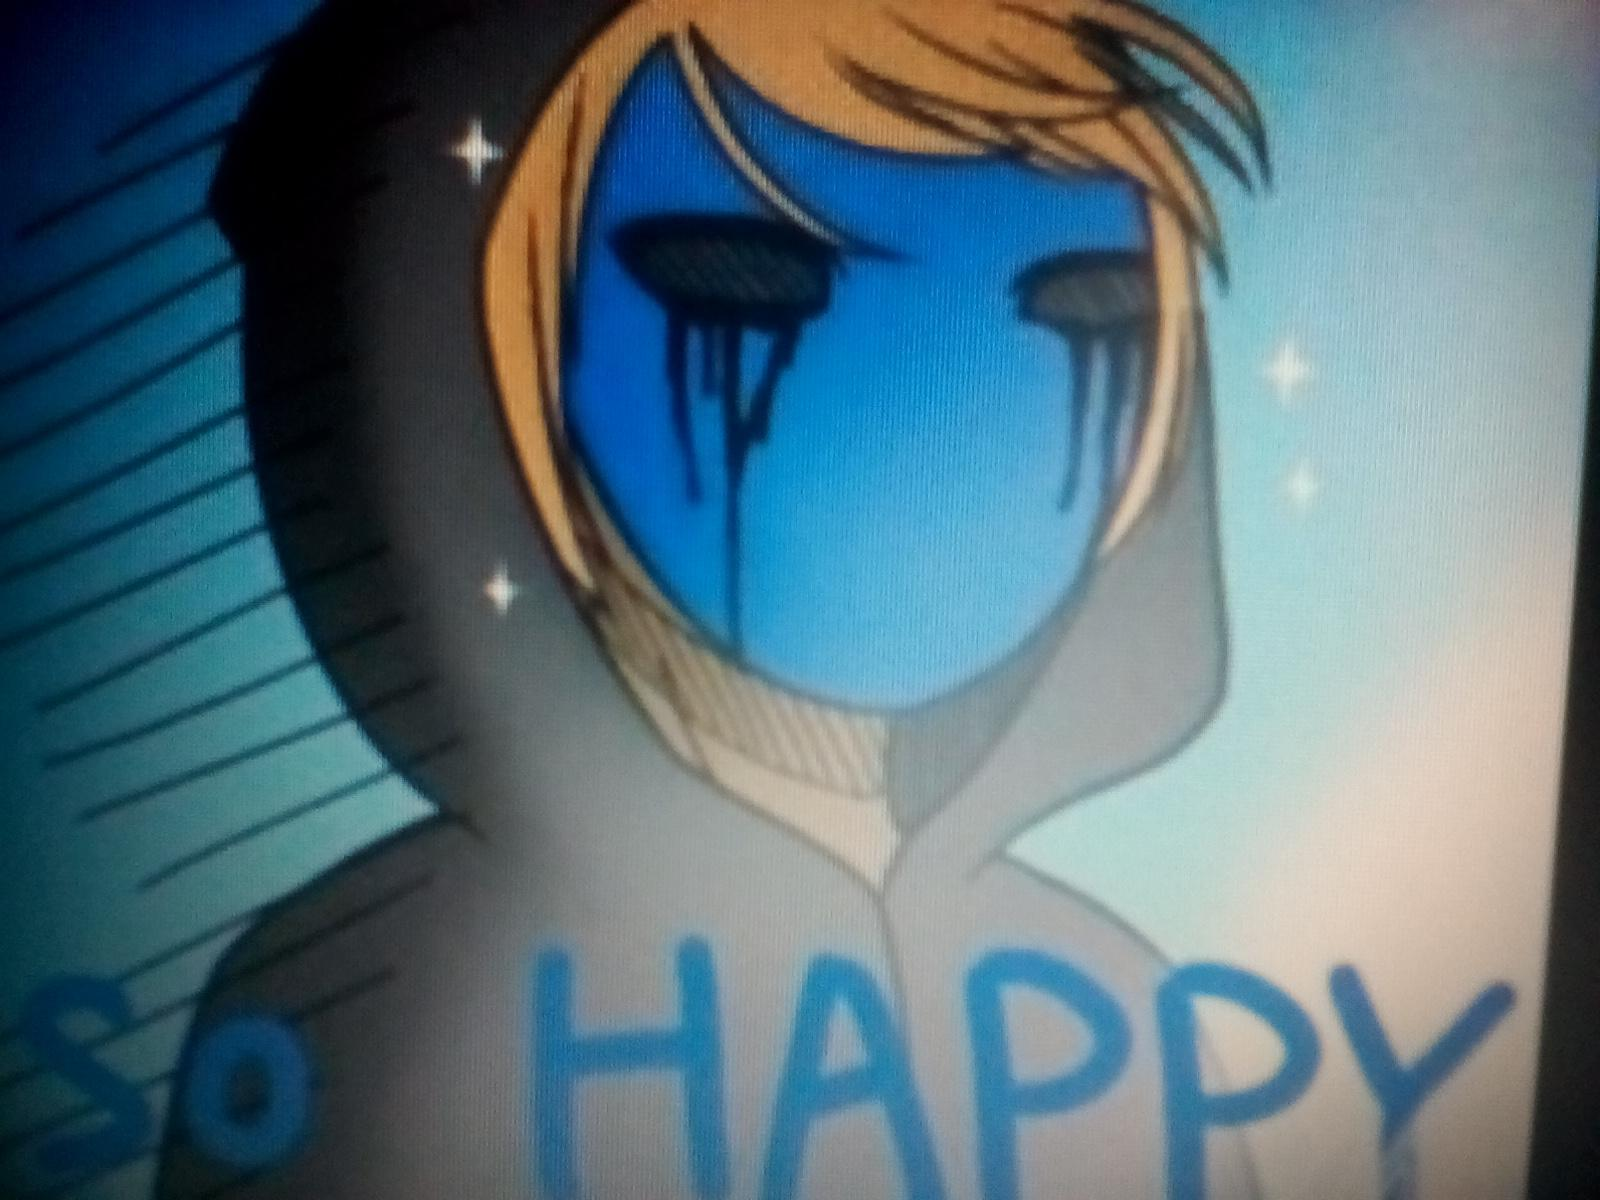 Next.... Eyeless Jack: favorite food?